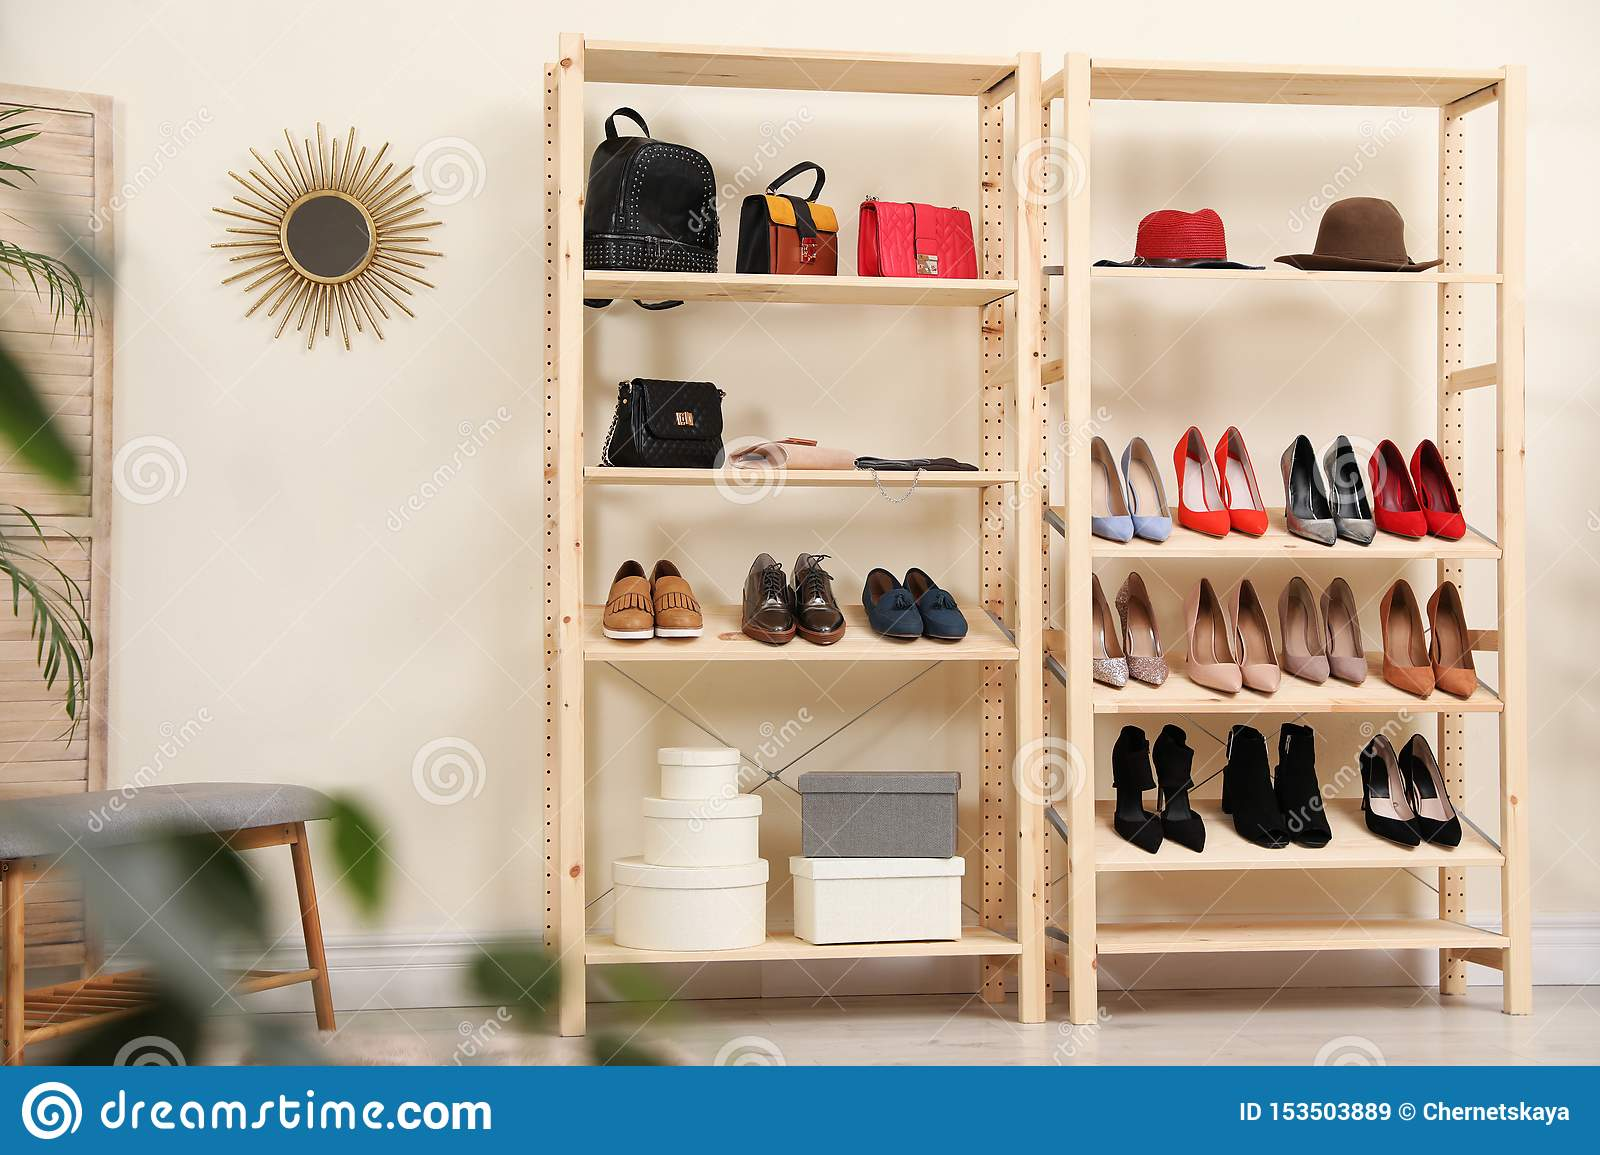 Wooden Shelving Unit With Different Shoes And Accessories In Stylish Room Stock Image Image Of Appartment Background 153503889